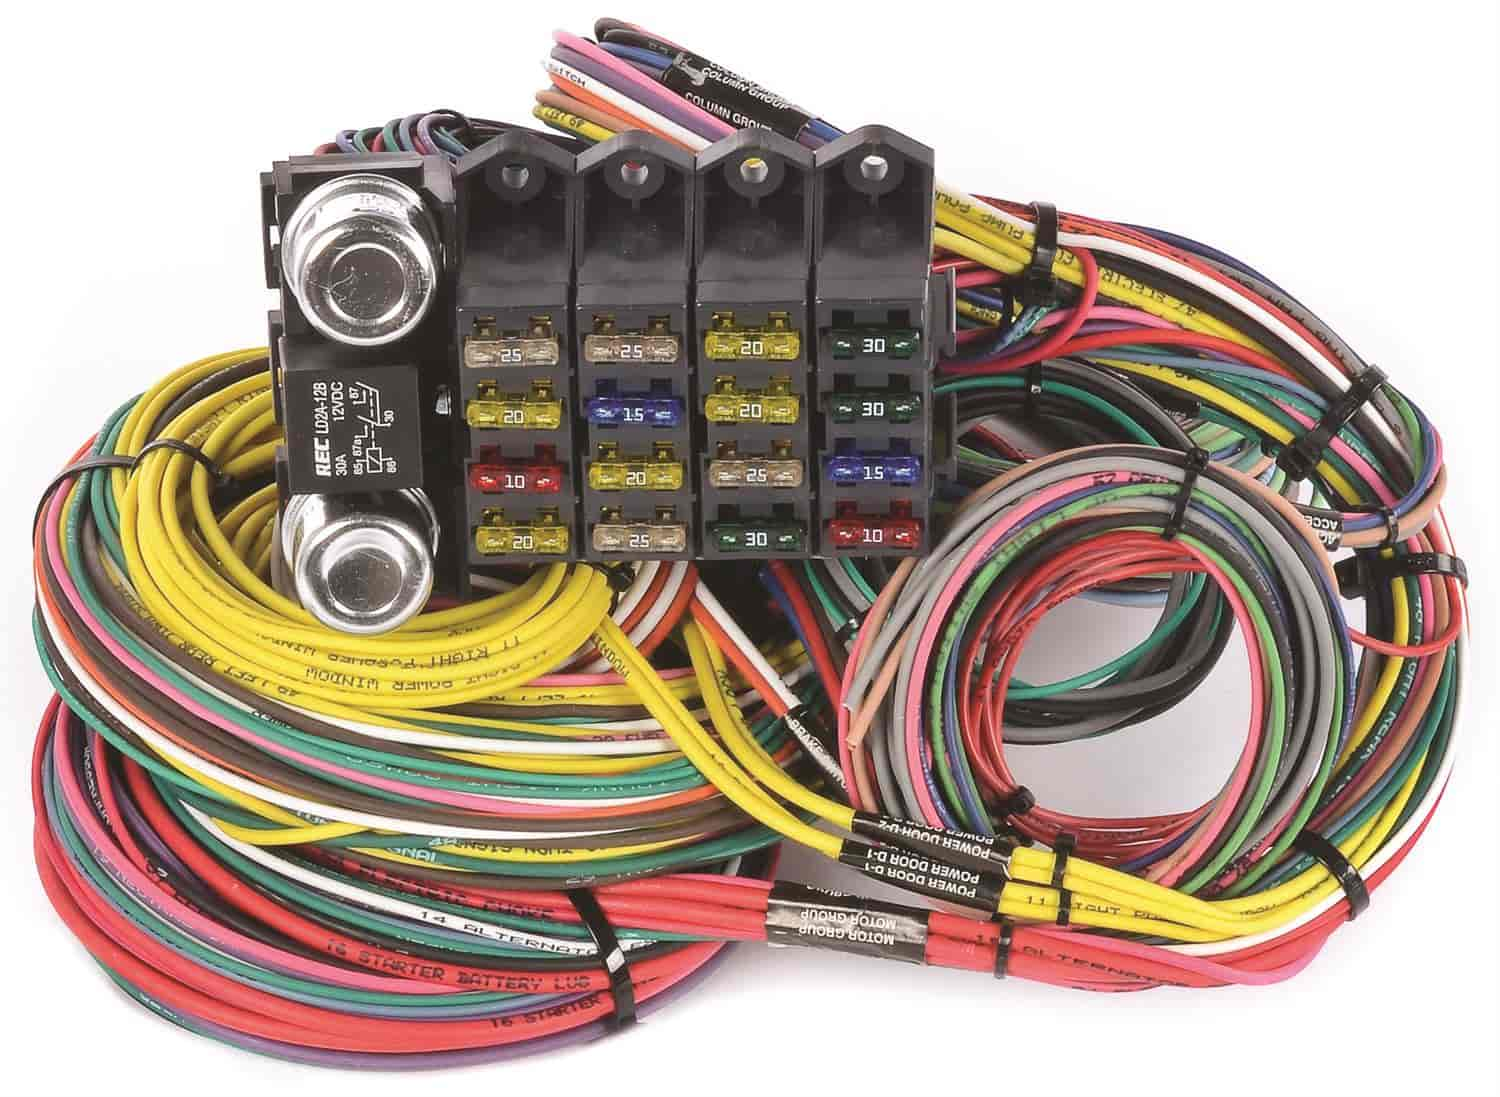 555 10405 jegs performance products 10405 universal wiring harness, 20 Circuit Breakers Types at readyjetset.co